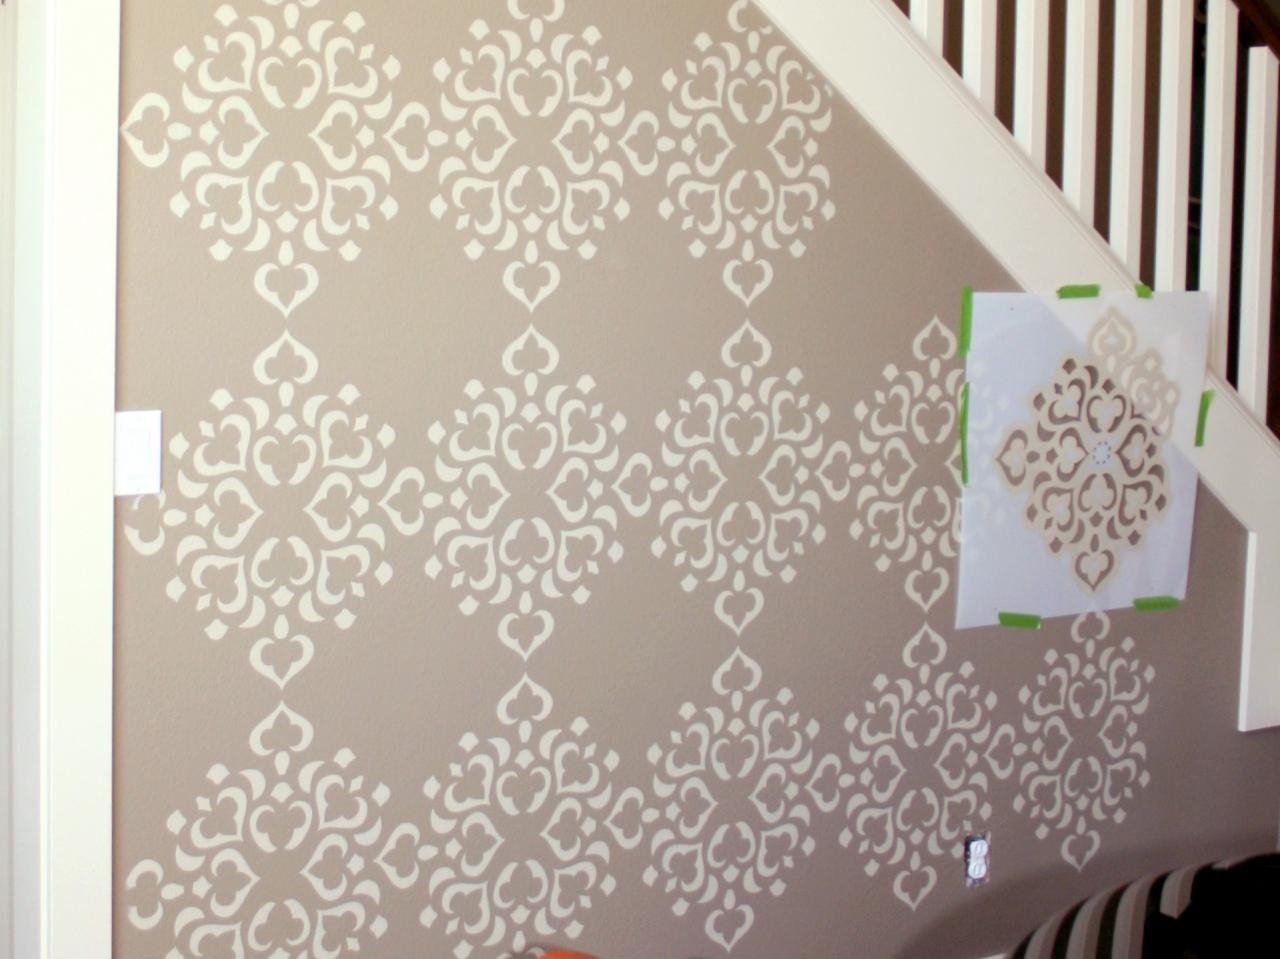 Give Your Home A Dramatic Look With The Help Of Wall Stencils Pertaining To Stencil Wall Art (View 11 of 20)